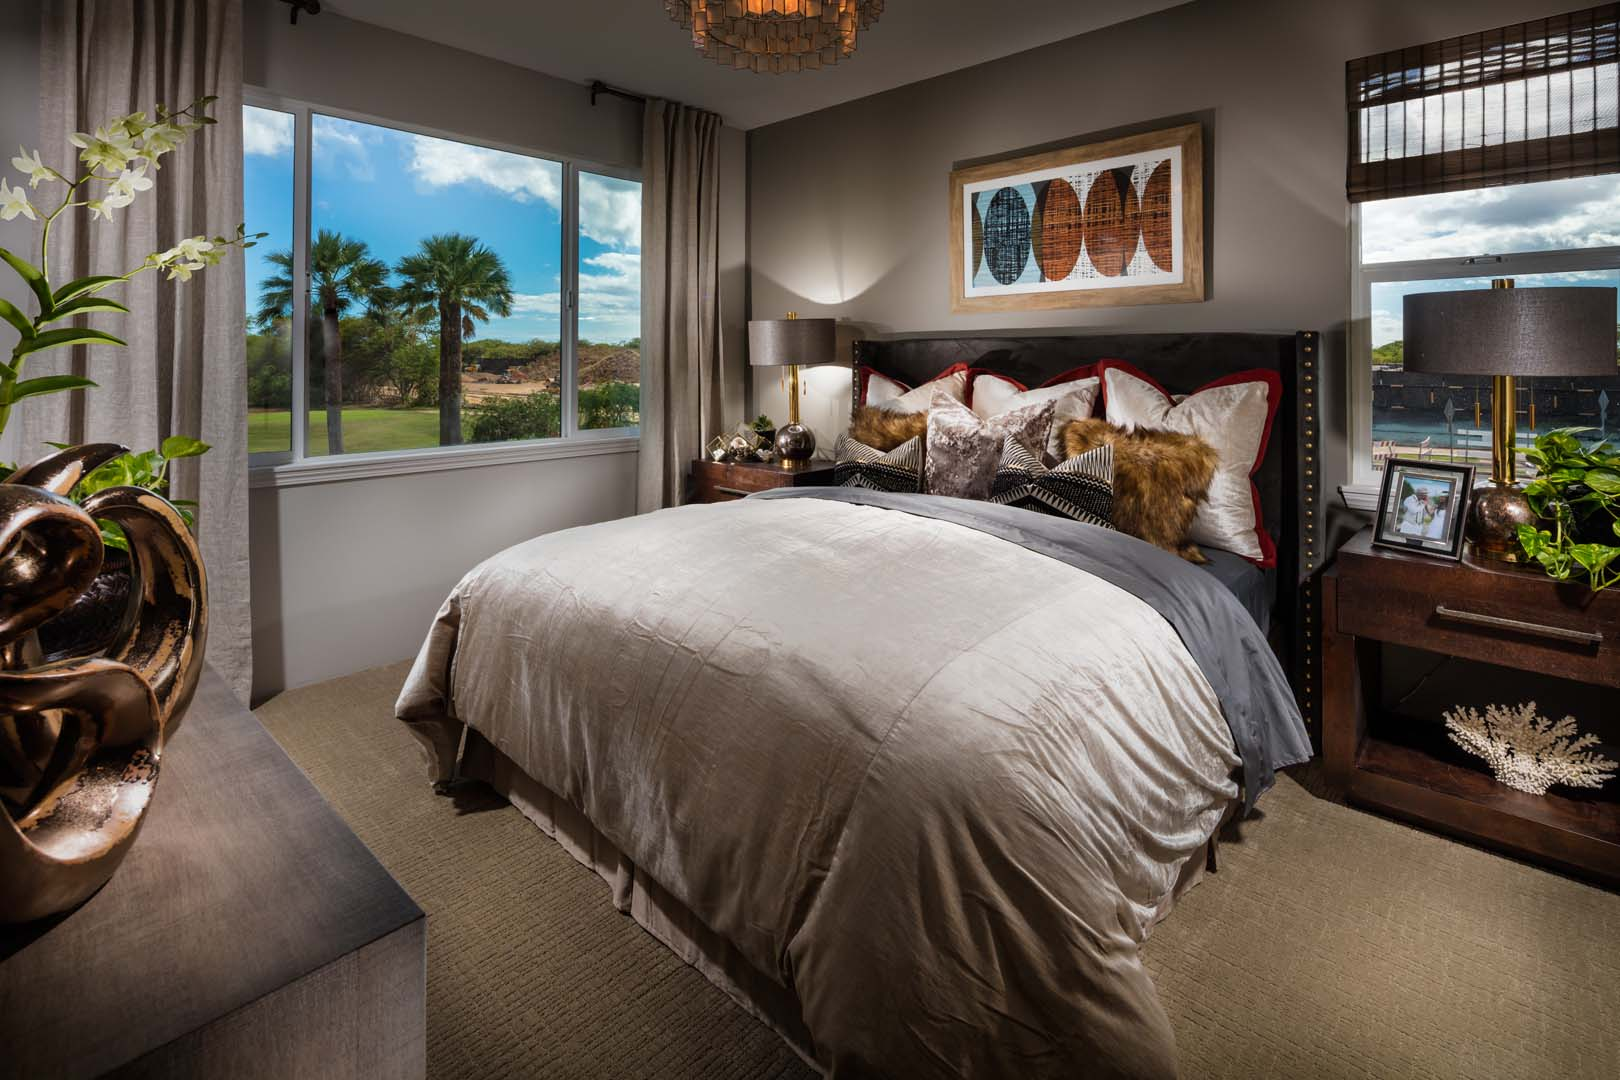 Coral Ridge Plan 4 - Master Bedroom